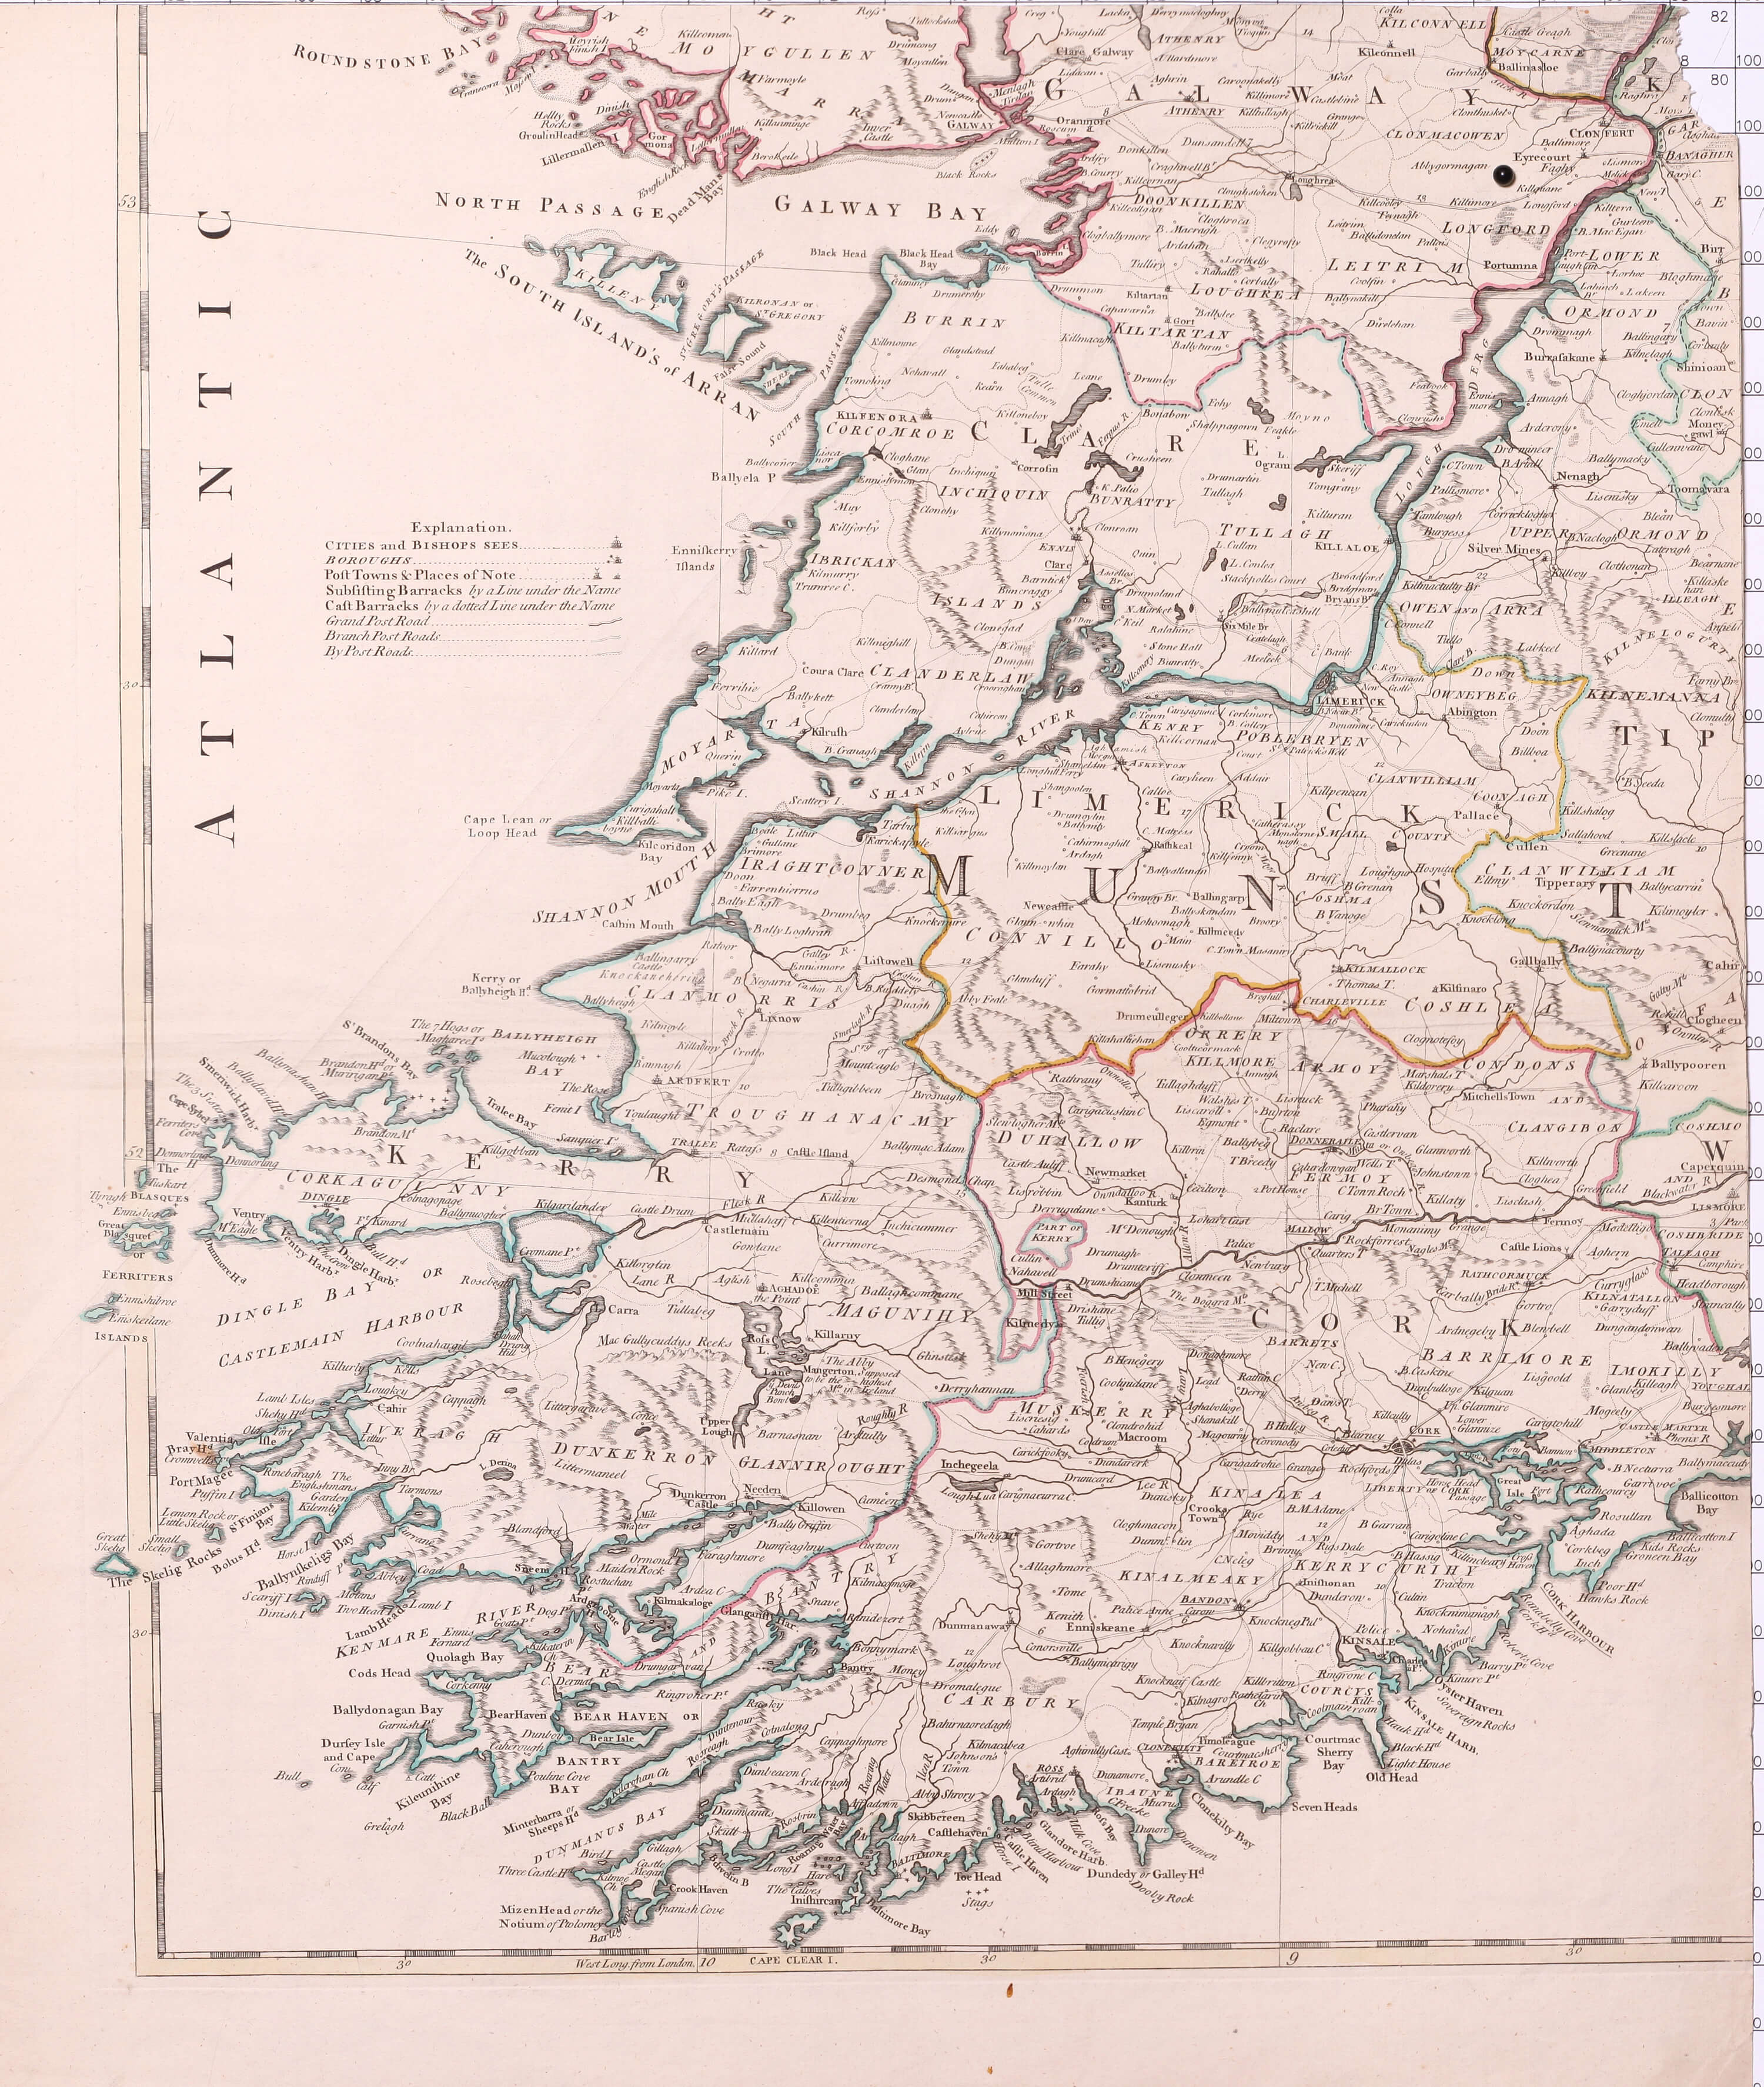 Map Of The West Of Ireland.Maps Of Ireland Part 4 1777 1794 0105 1 0156 L Brown Collection